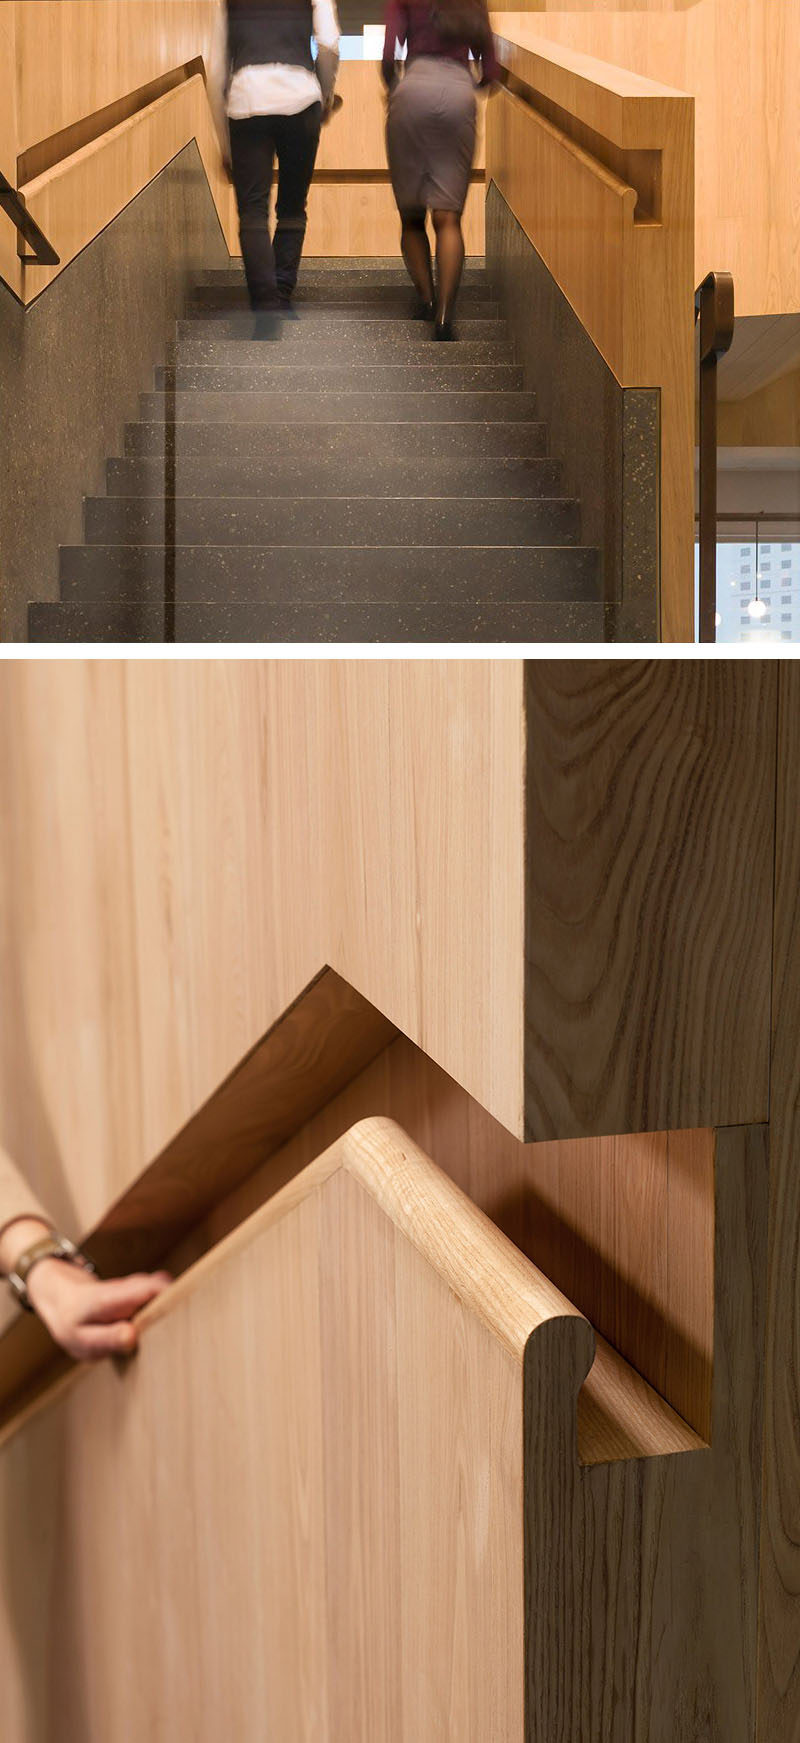 Stair Design Idea - 9 Examples Of Built-In Handrails // This office in Hong Kong transitioned from brass handrails into built-in wooden handrails.